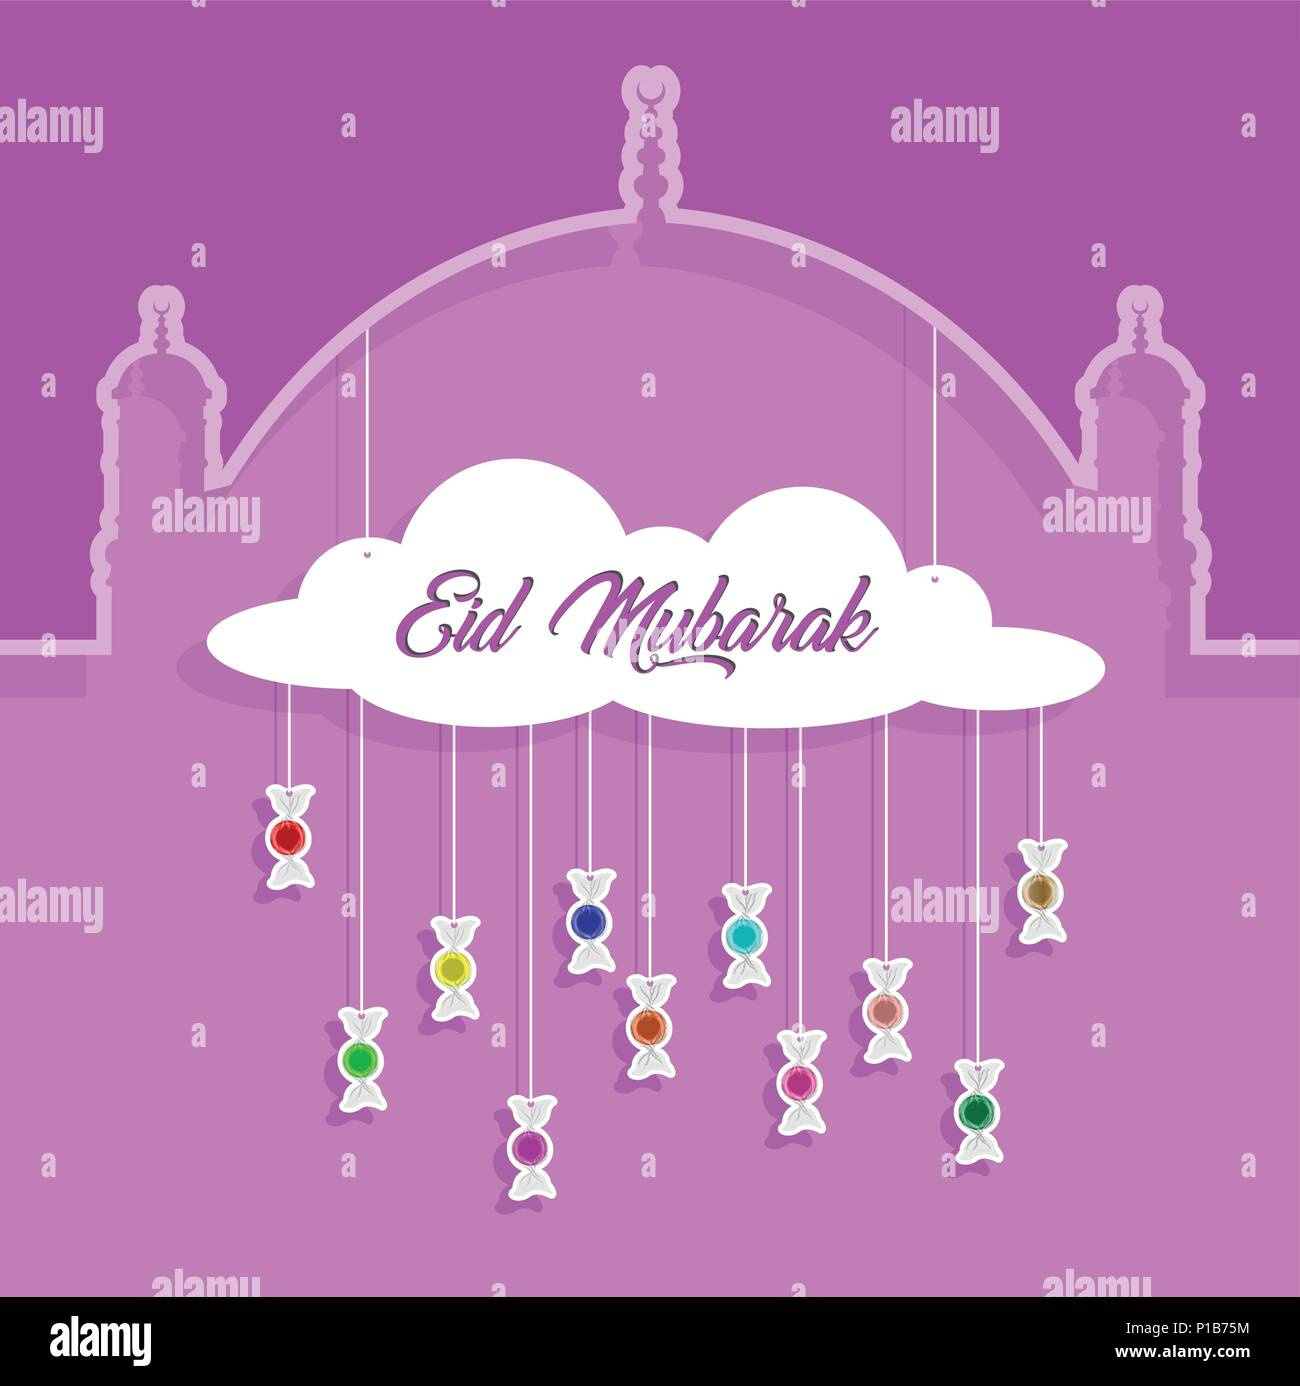 Eid mubarak greeting with paper cut out bonbons all the objects are eid mubarak greeting with paper cut out bonbons all the objects are in different layers and the text types do not need any font m4hsunfo